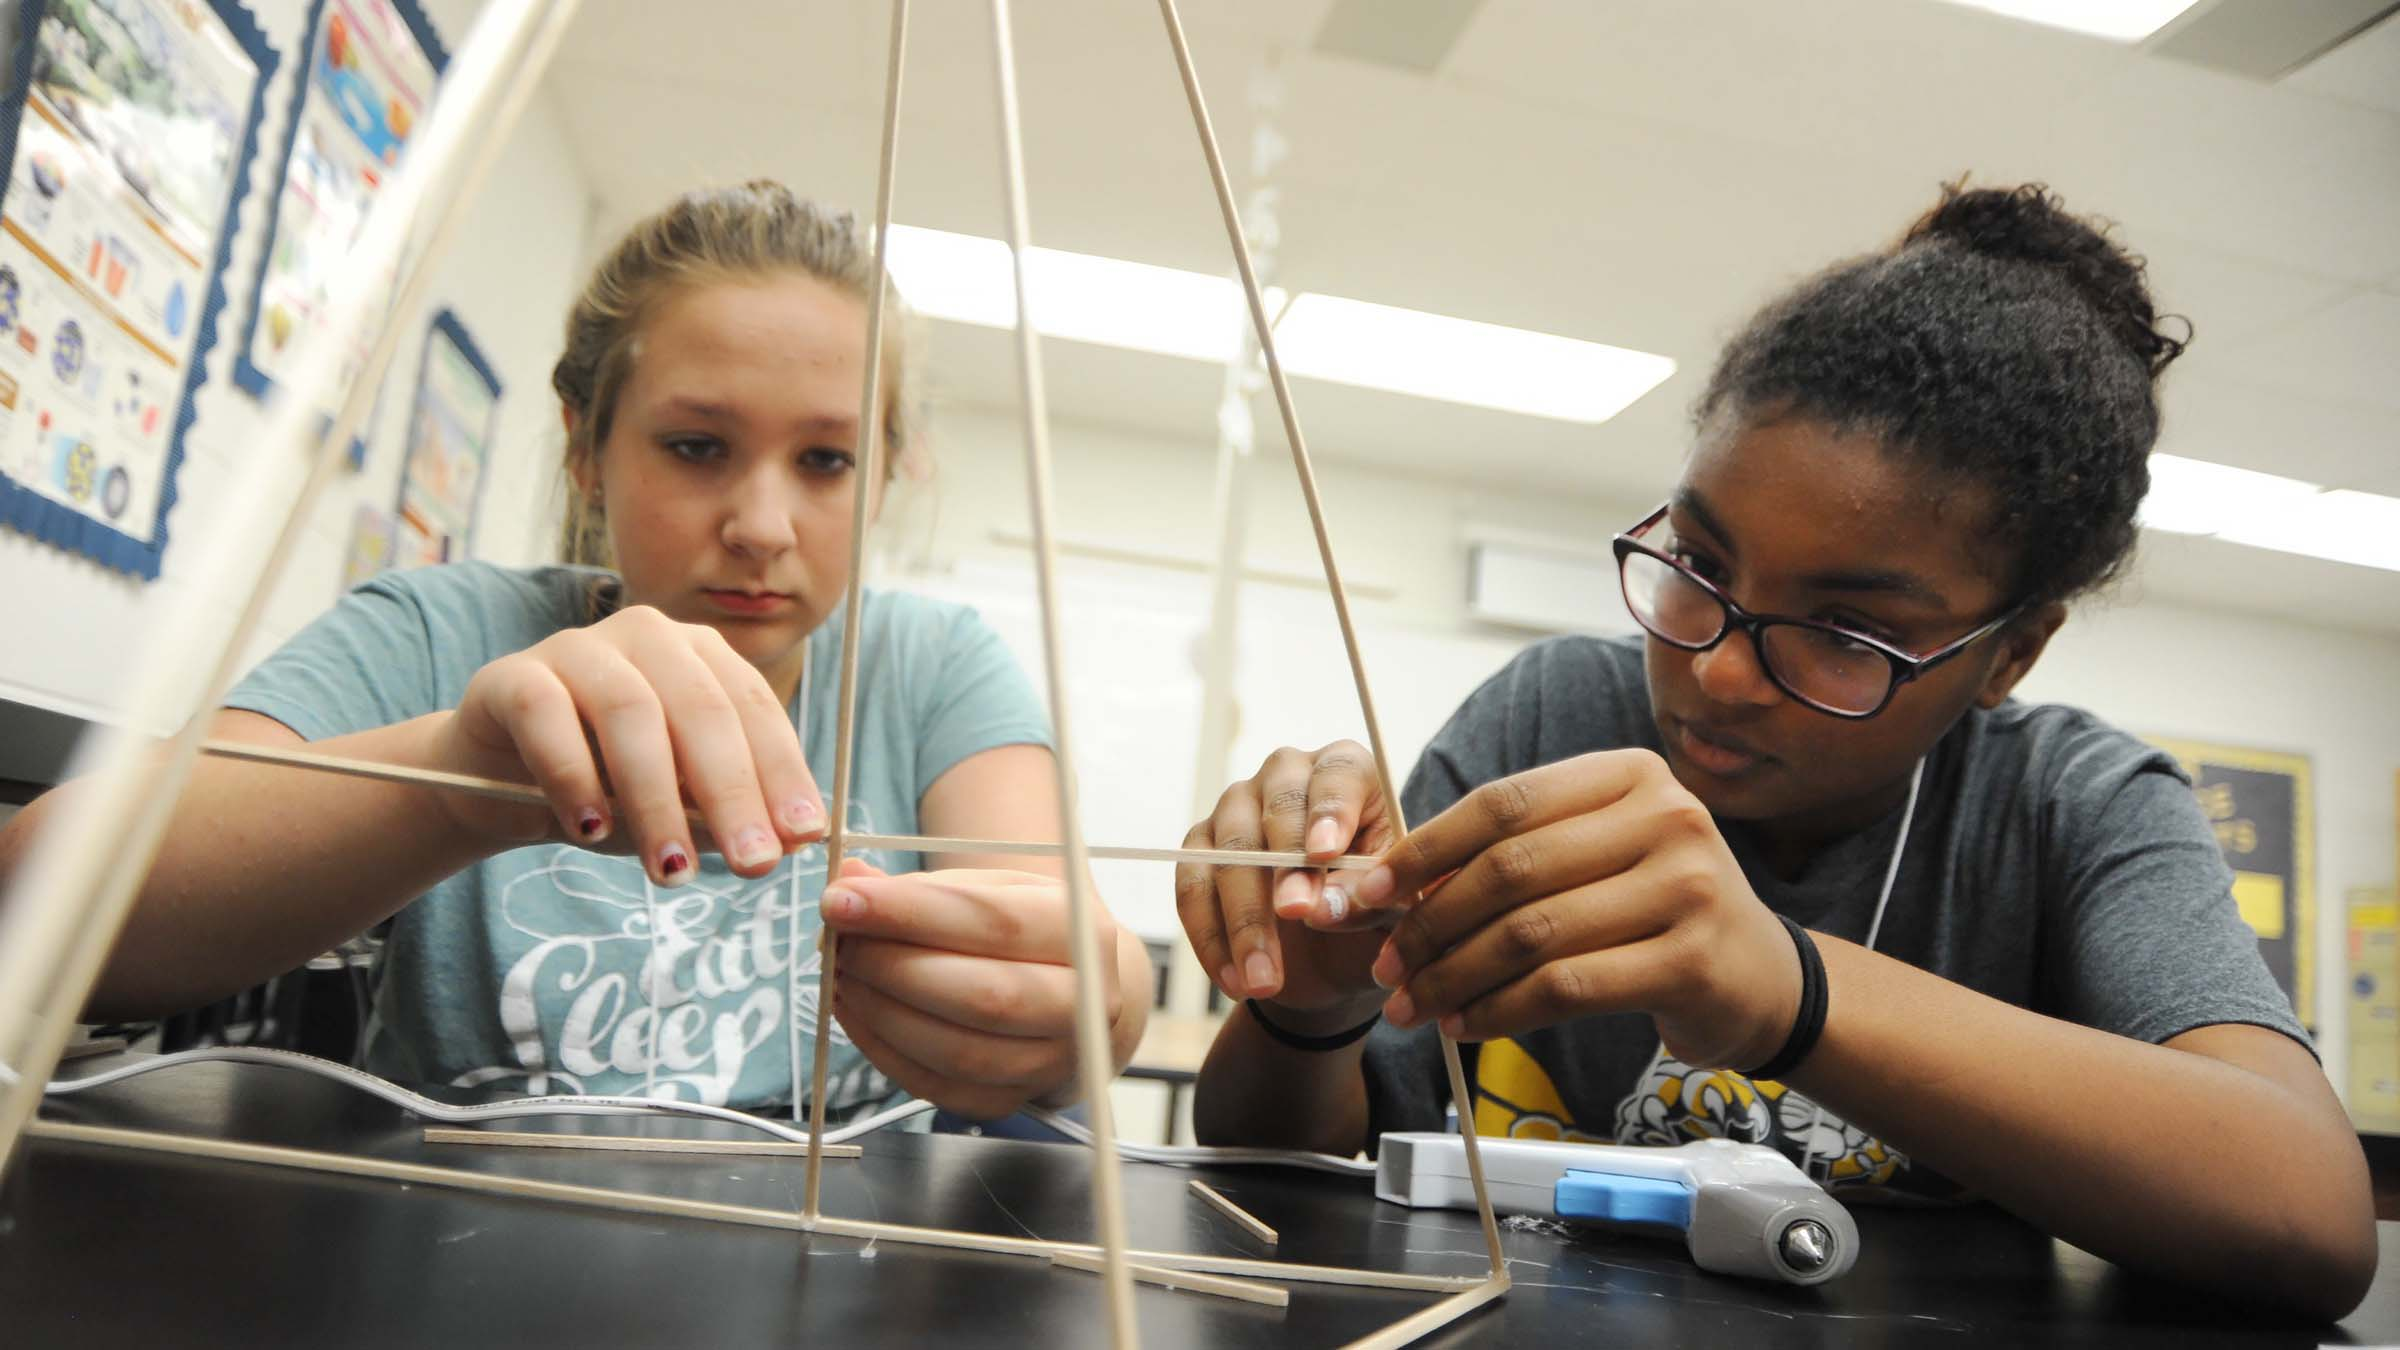 teenagers work together on a craft project